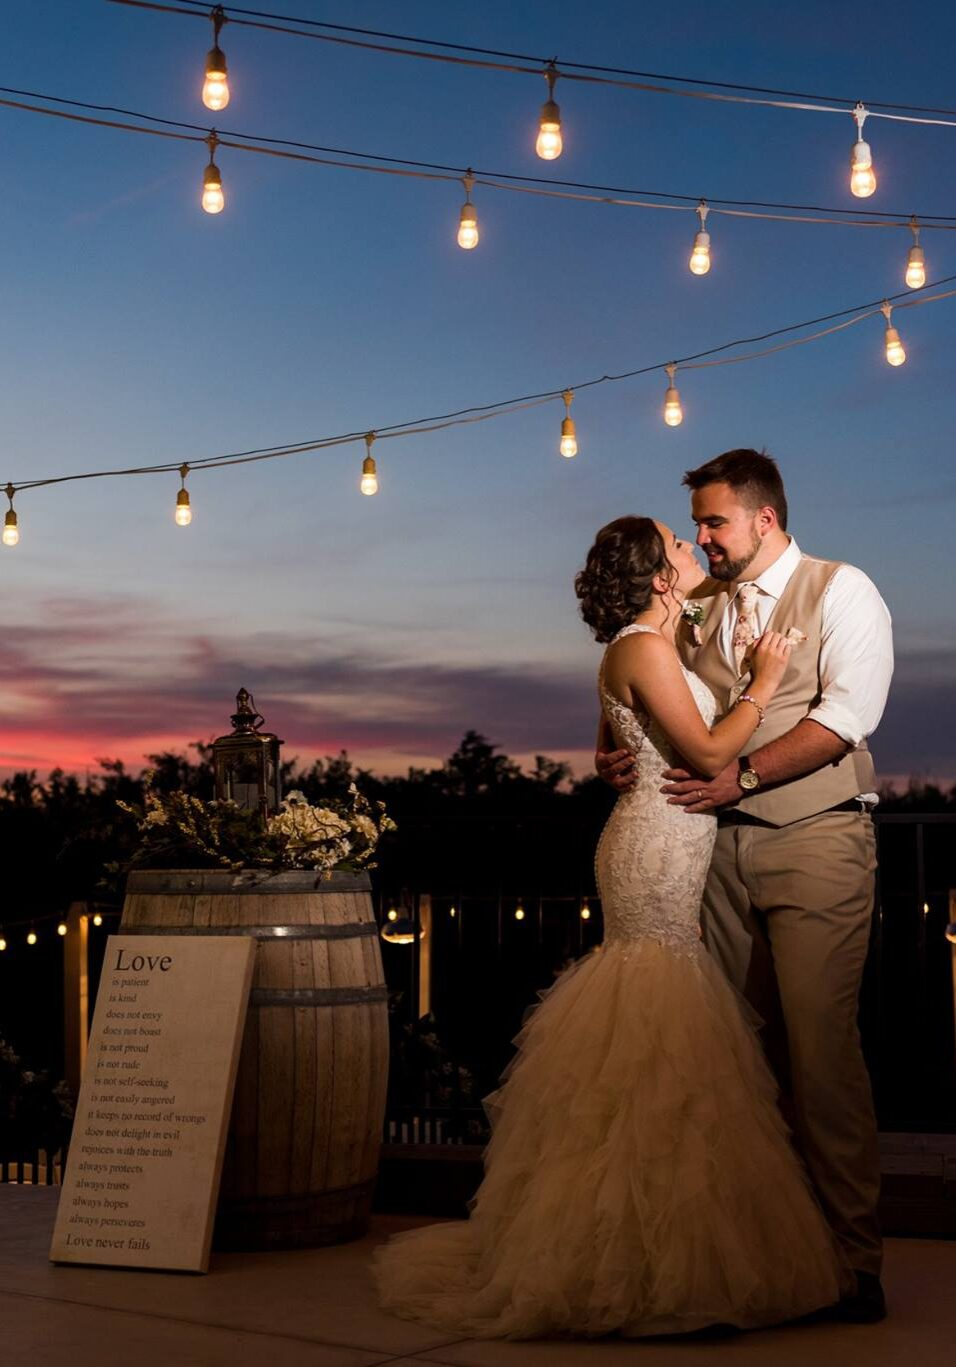 Congratulations Mr. & Mrs. Jones!   Photo: Brooke Marcella Photography